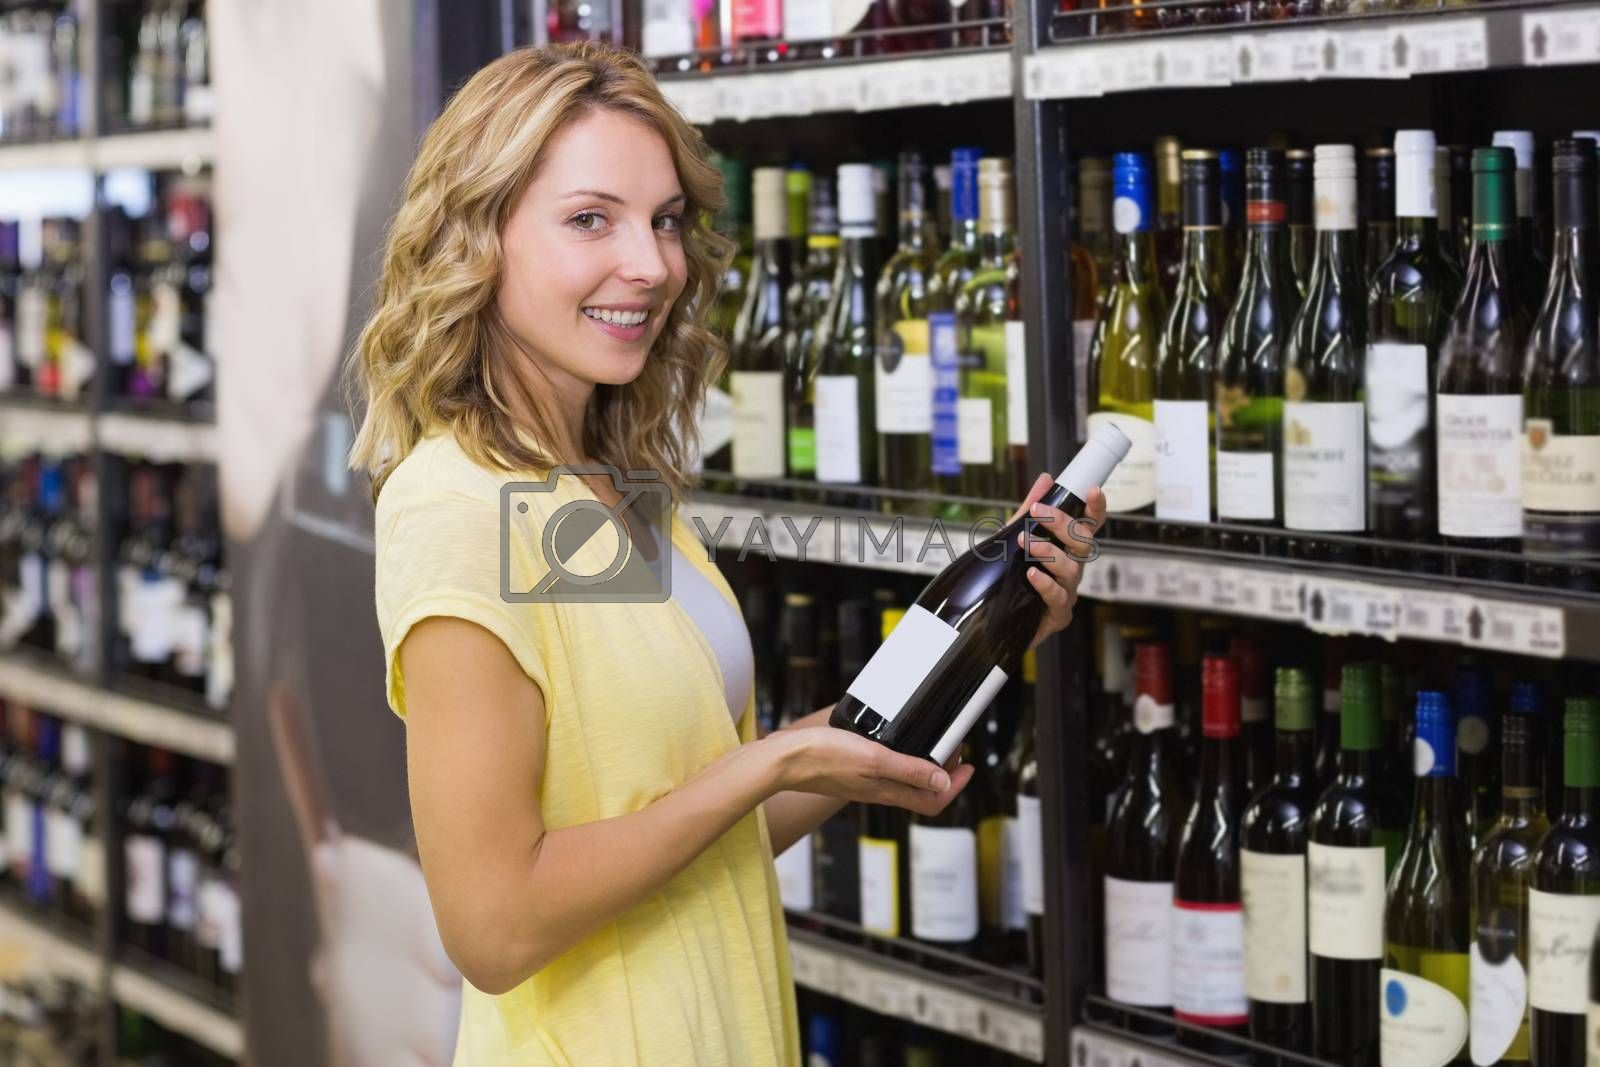 Royalty free image of Portrait of a smiling pretty blonde woman having a wine bottle in her hands  by Wavebreakmedia